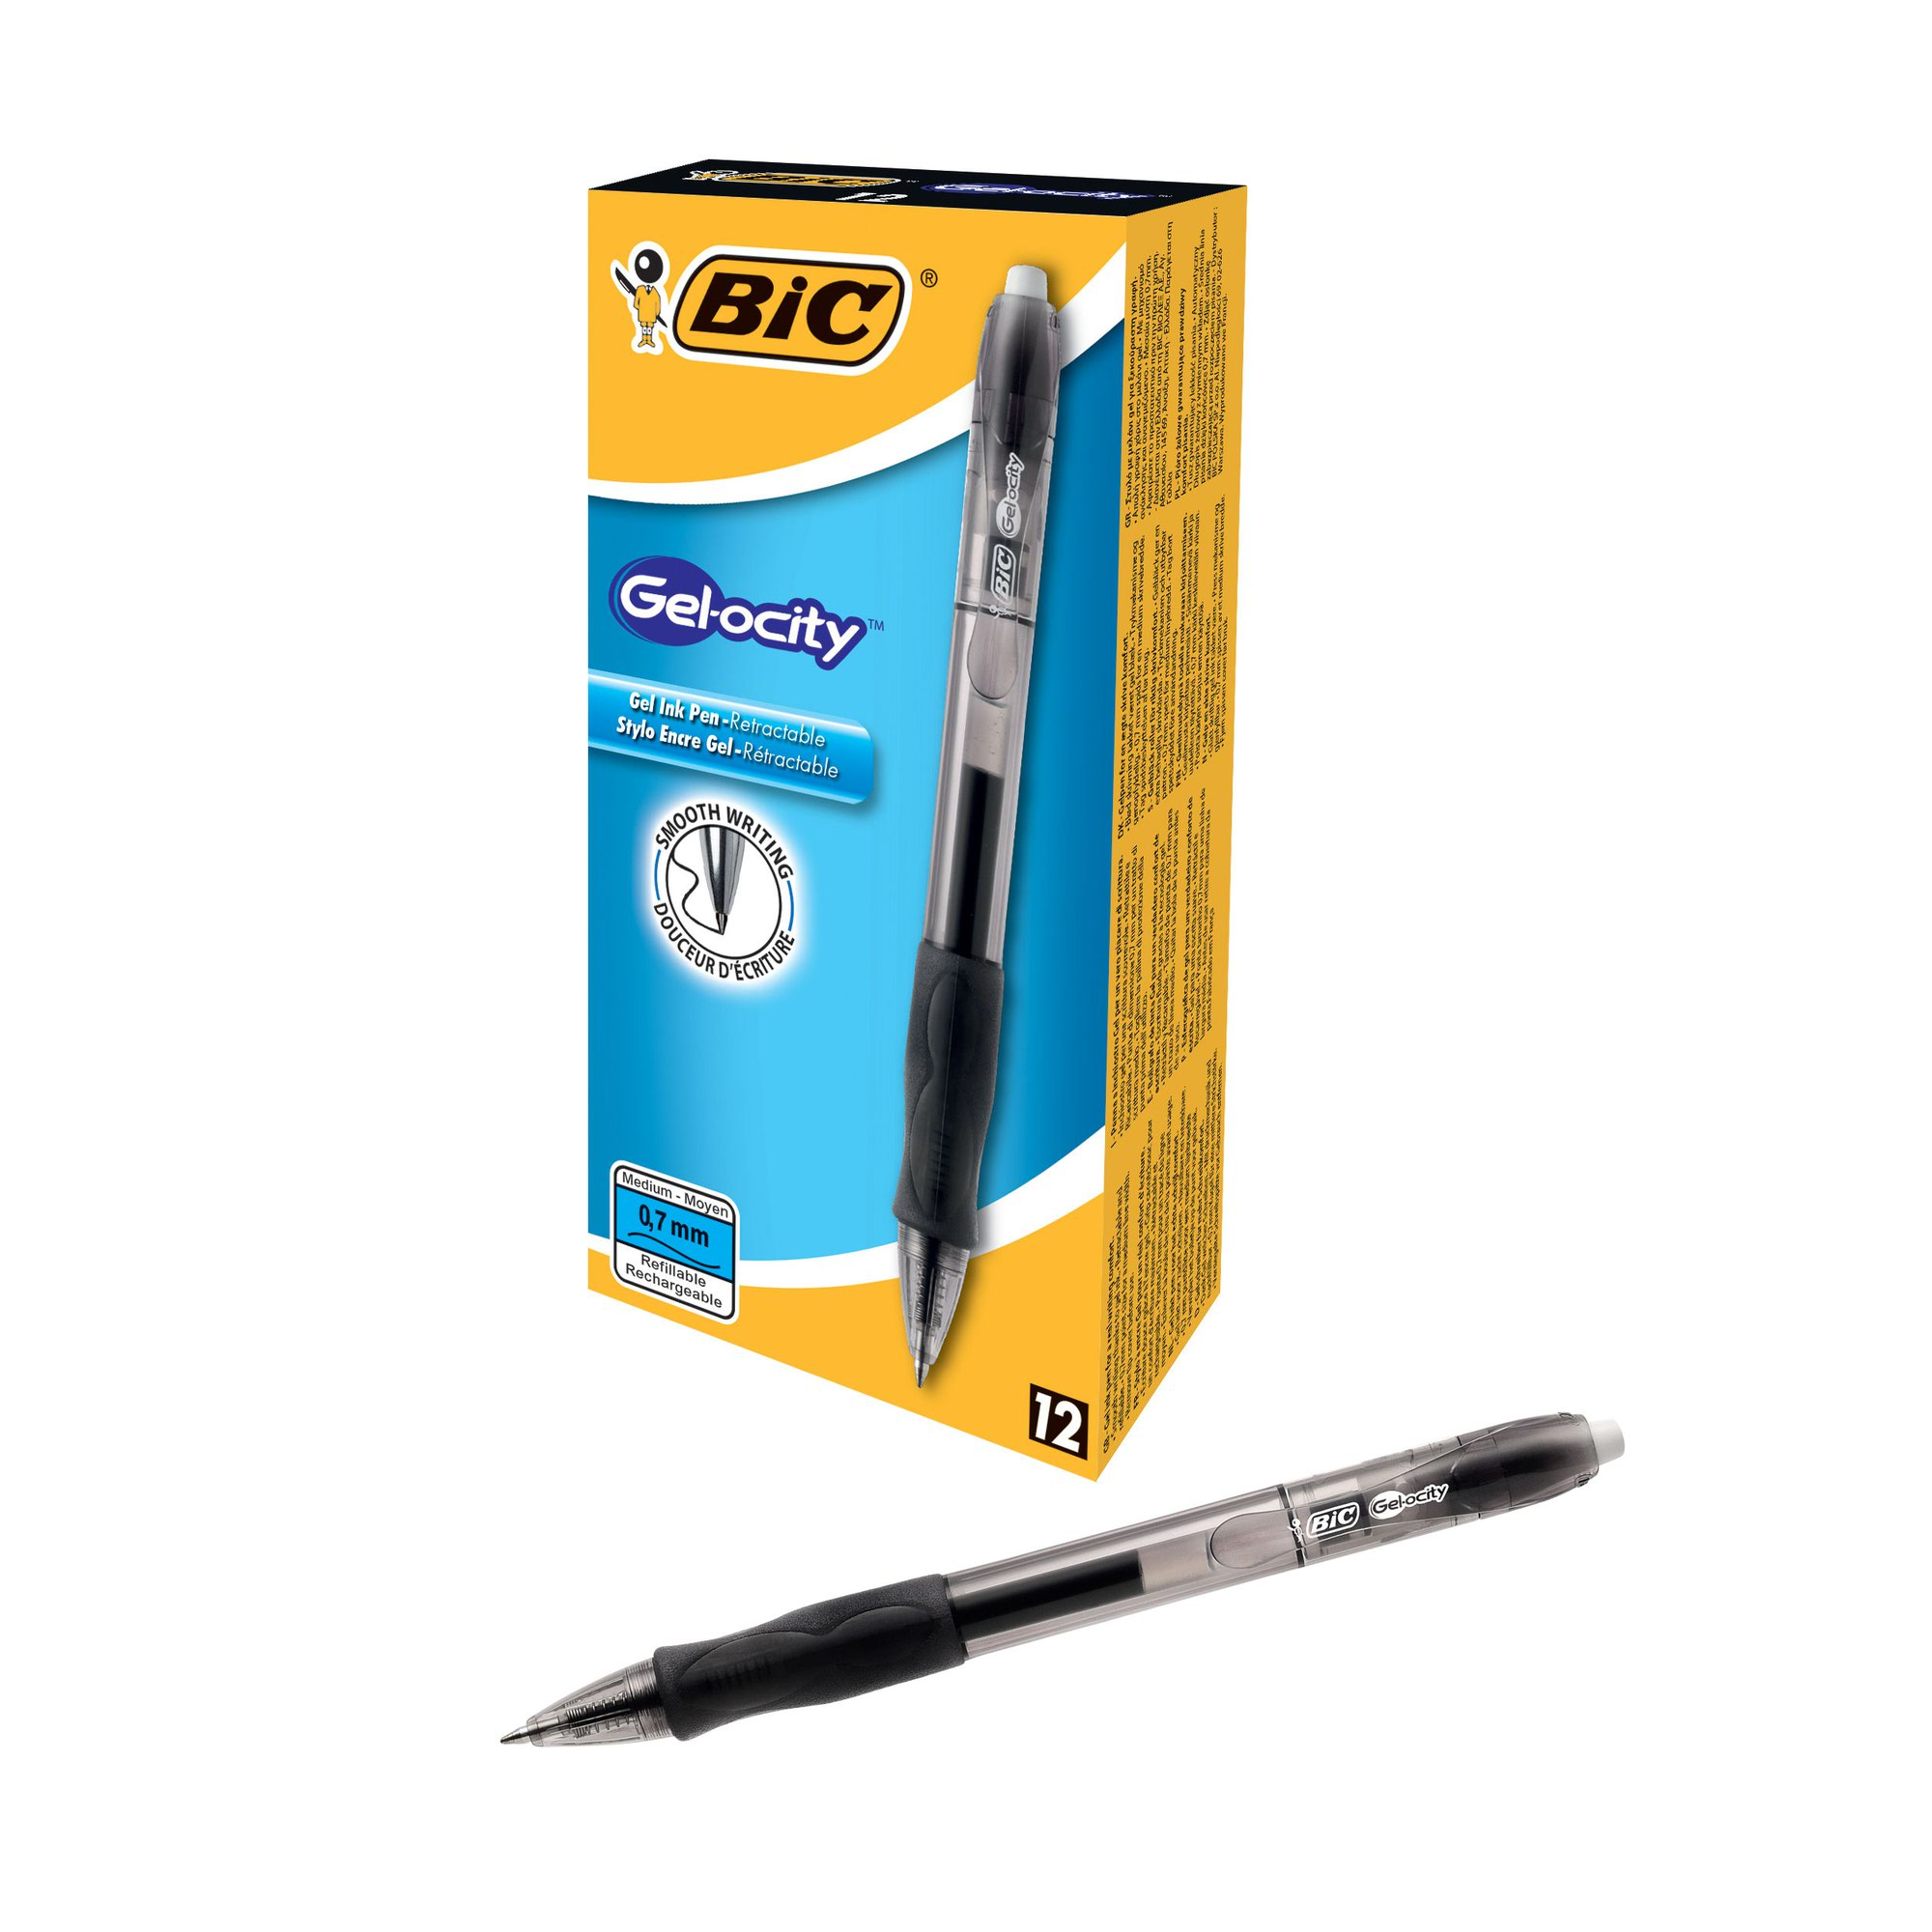 BIC Gelocity Retractable Pen Black 820565